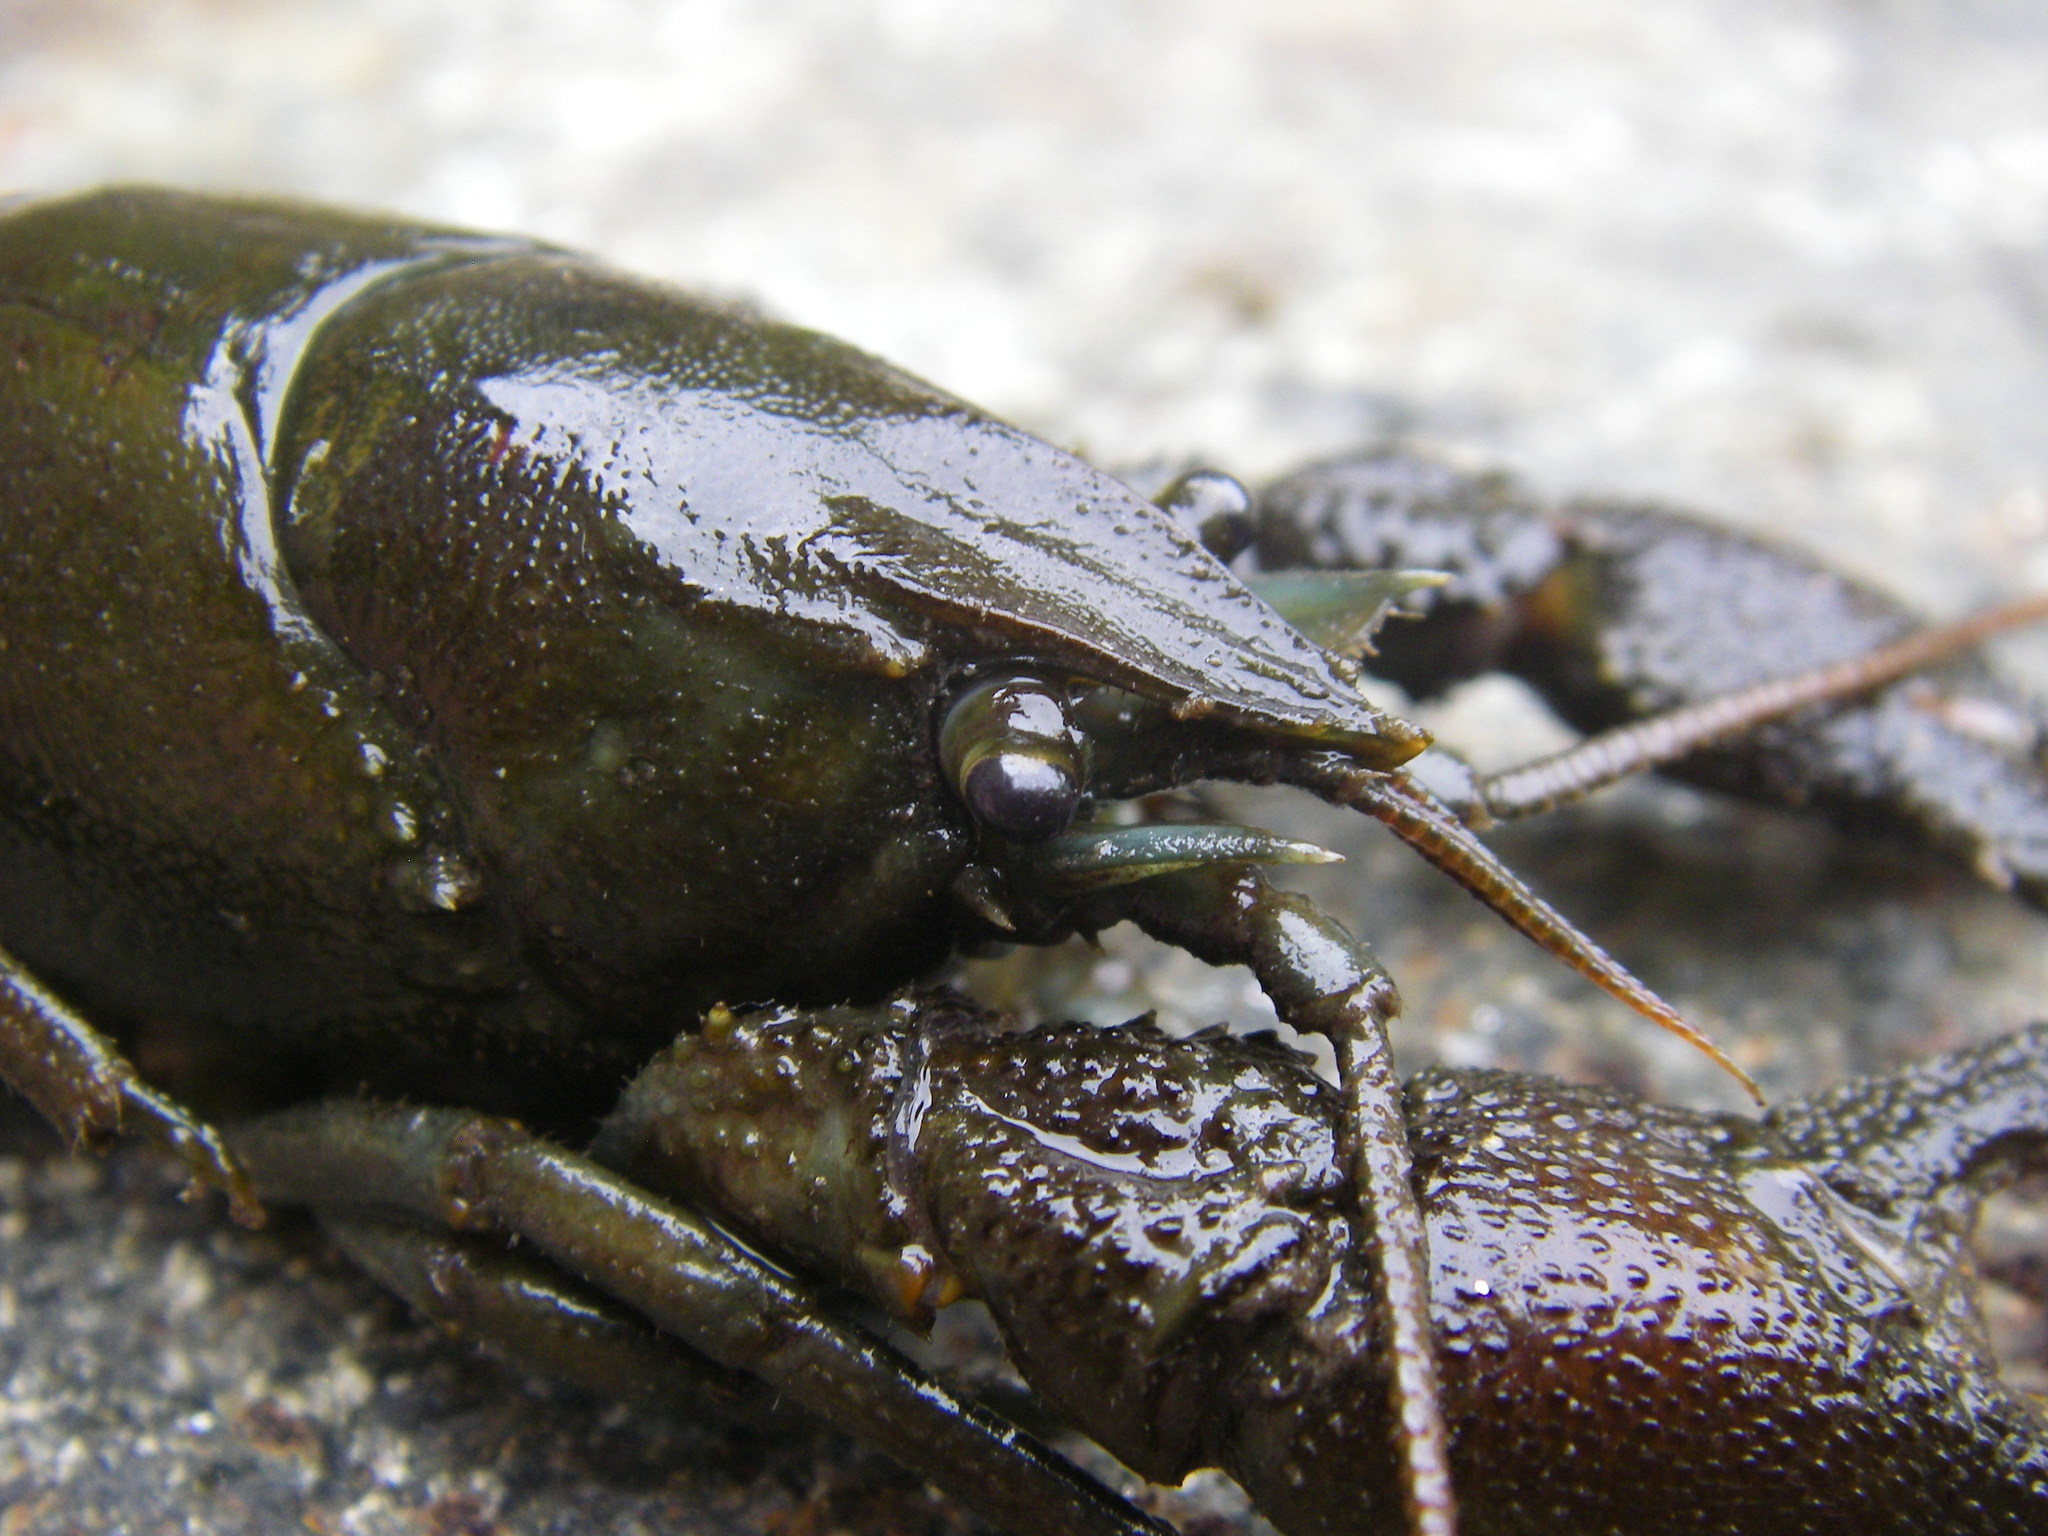 Image of Atlantic Stream Crayfish